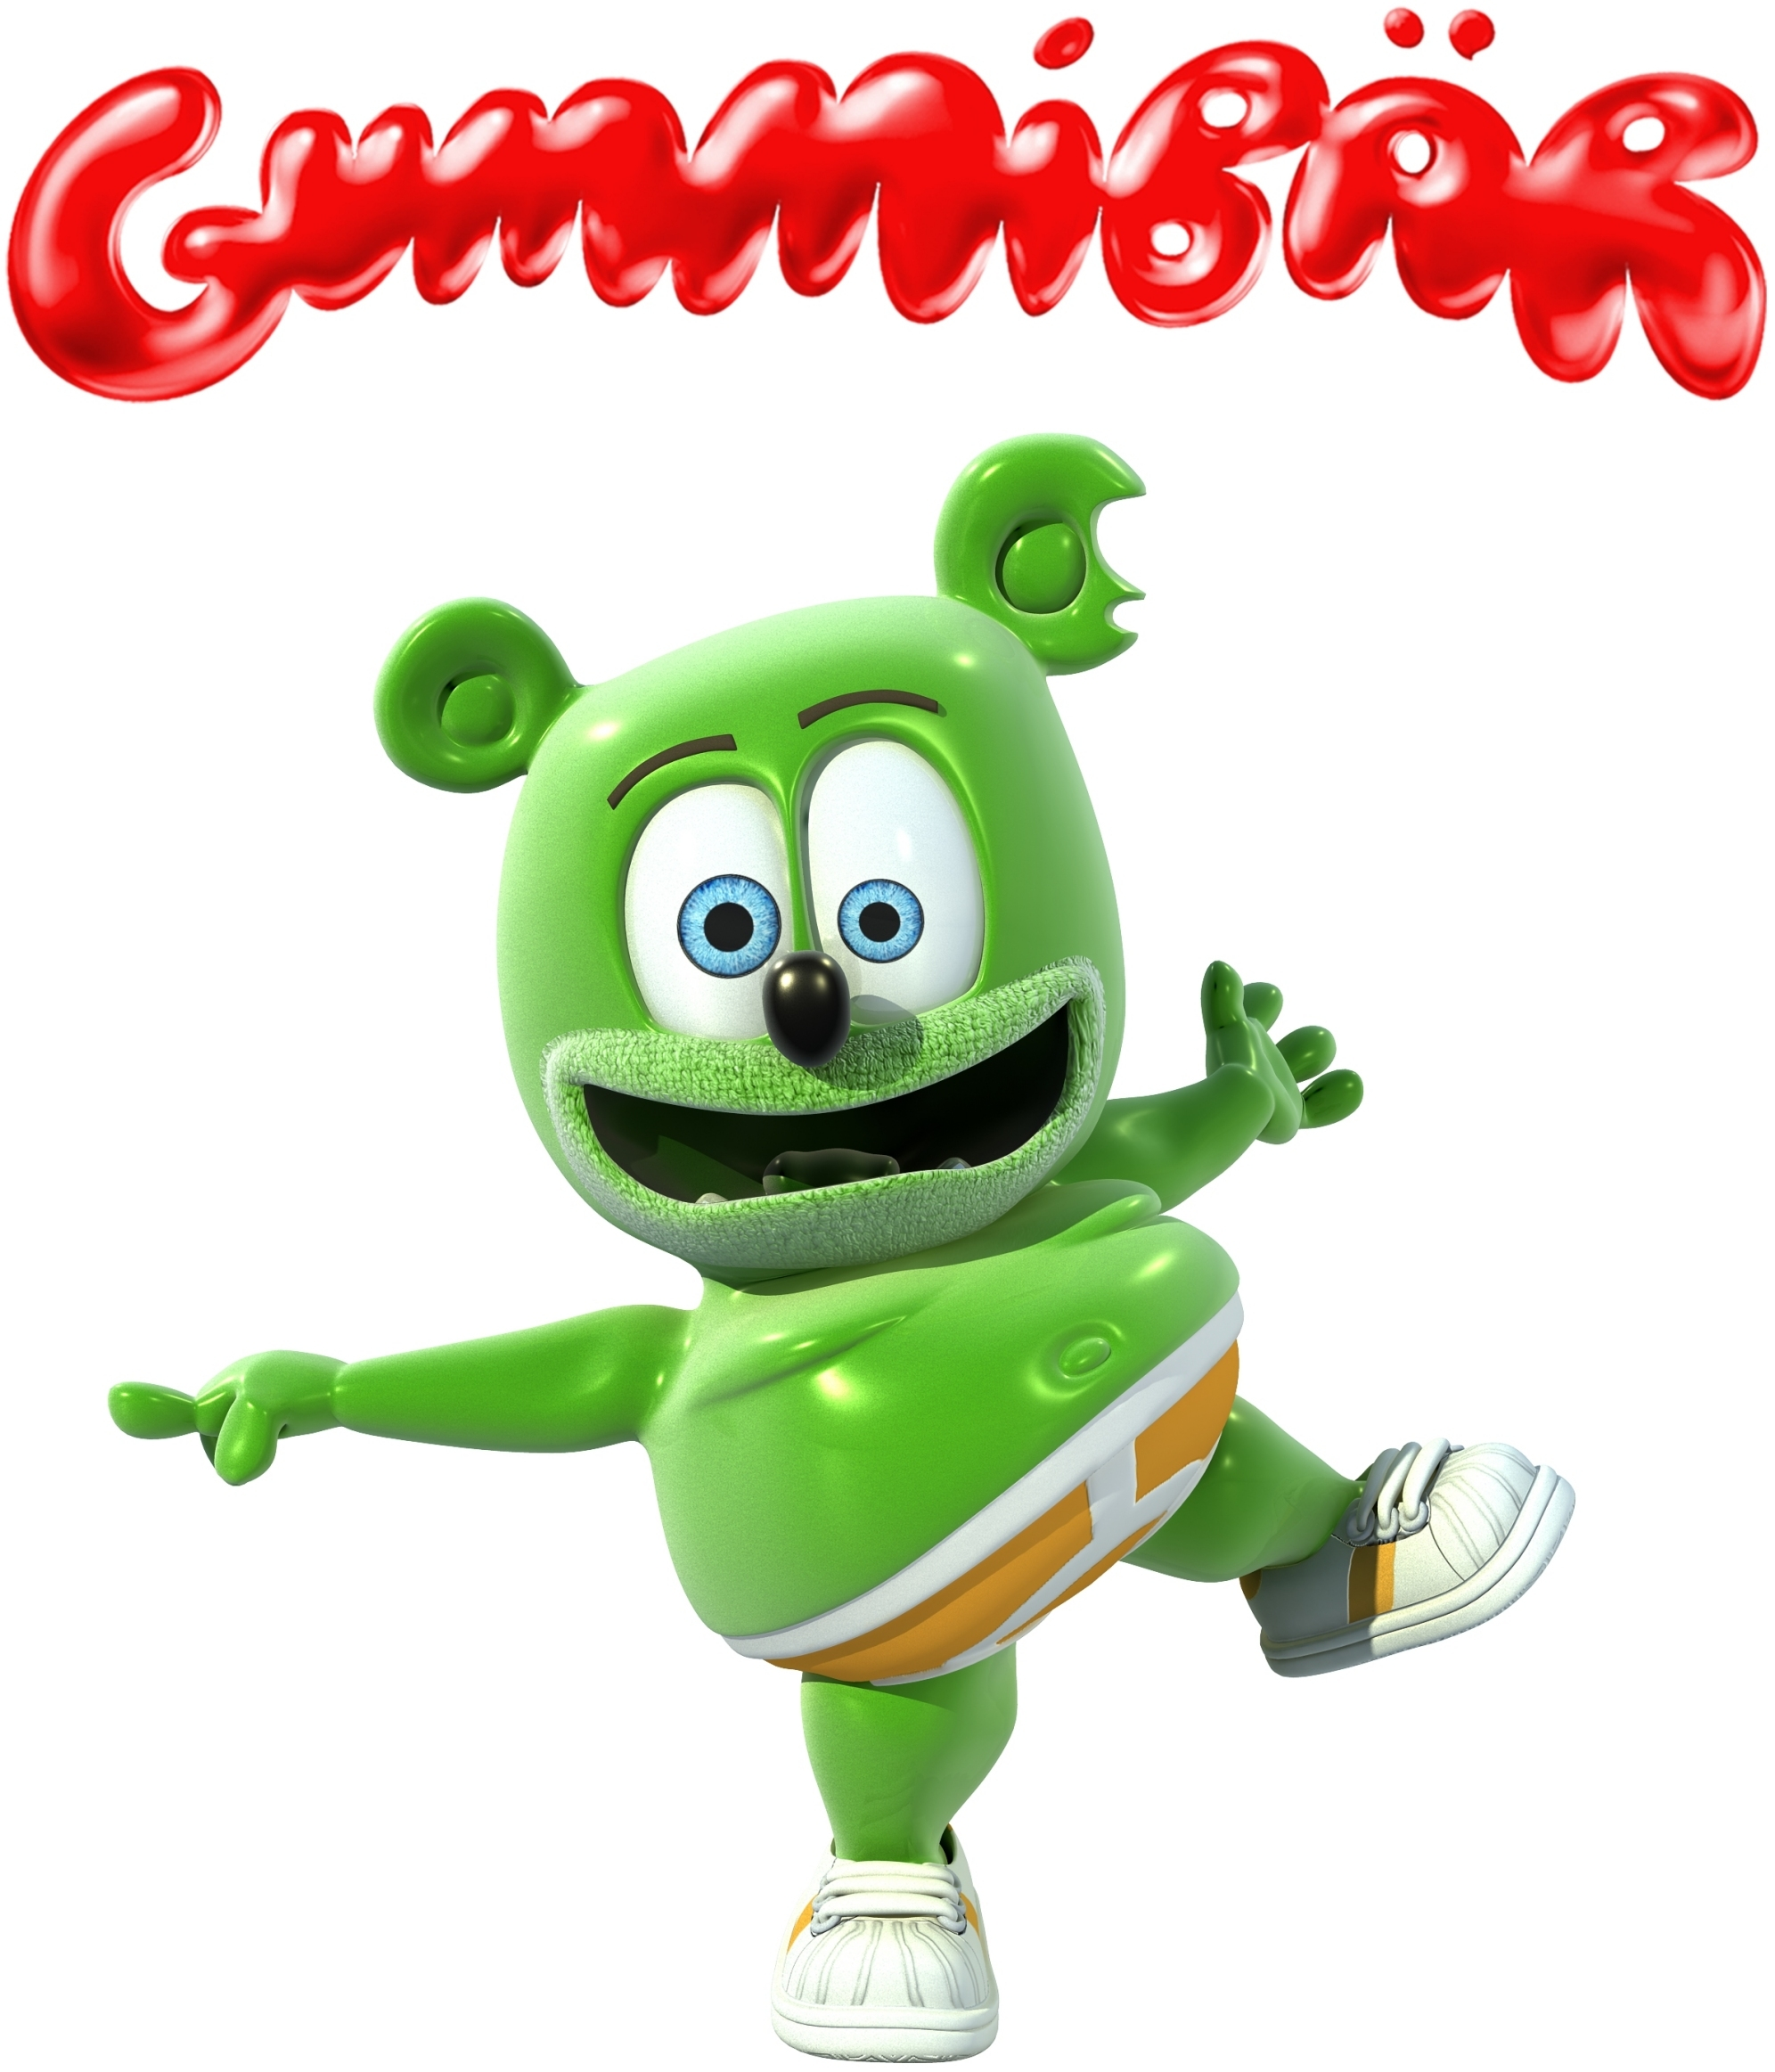 GUMMIB R Click Here To View This Trademark In The Office Of Origin